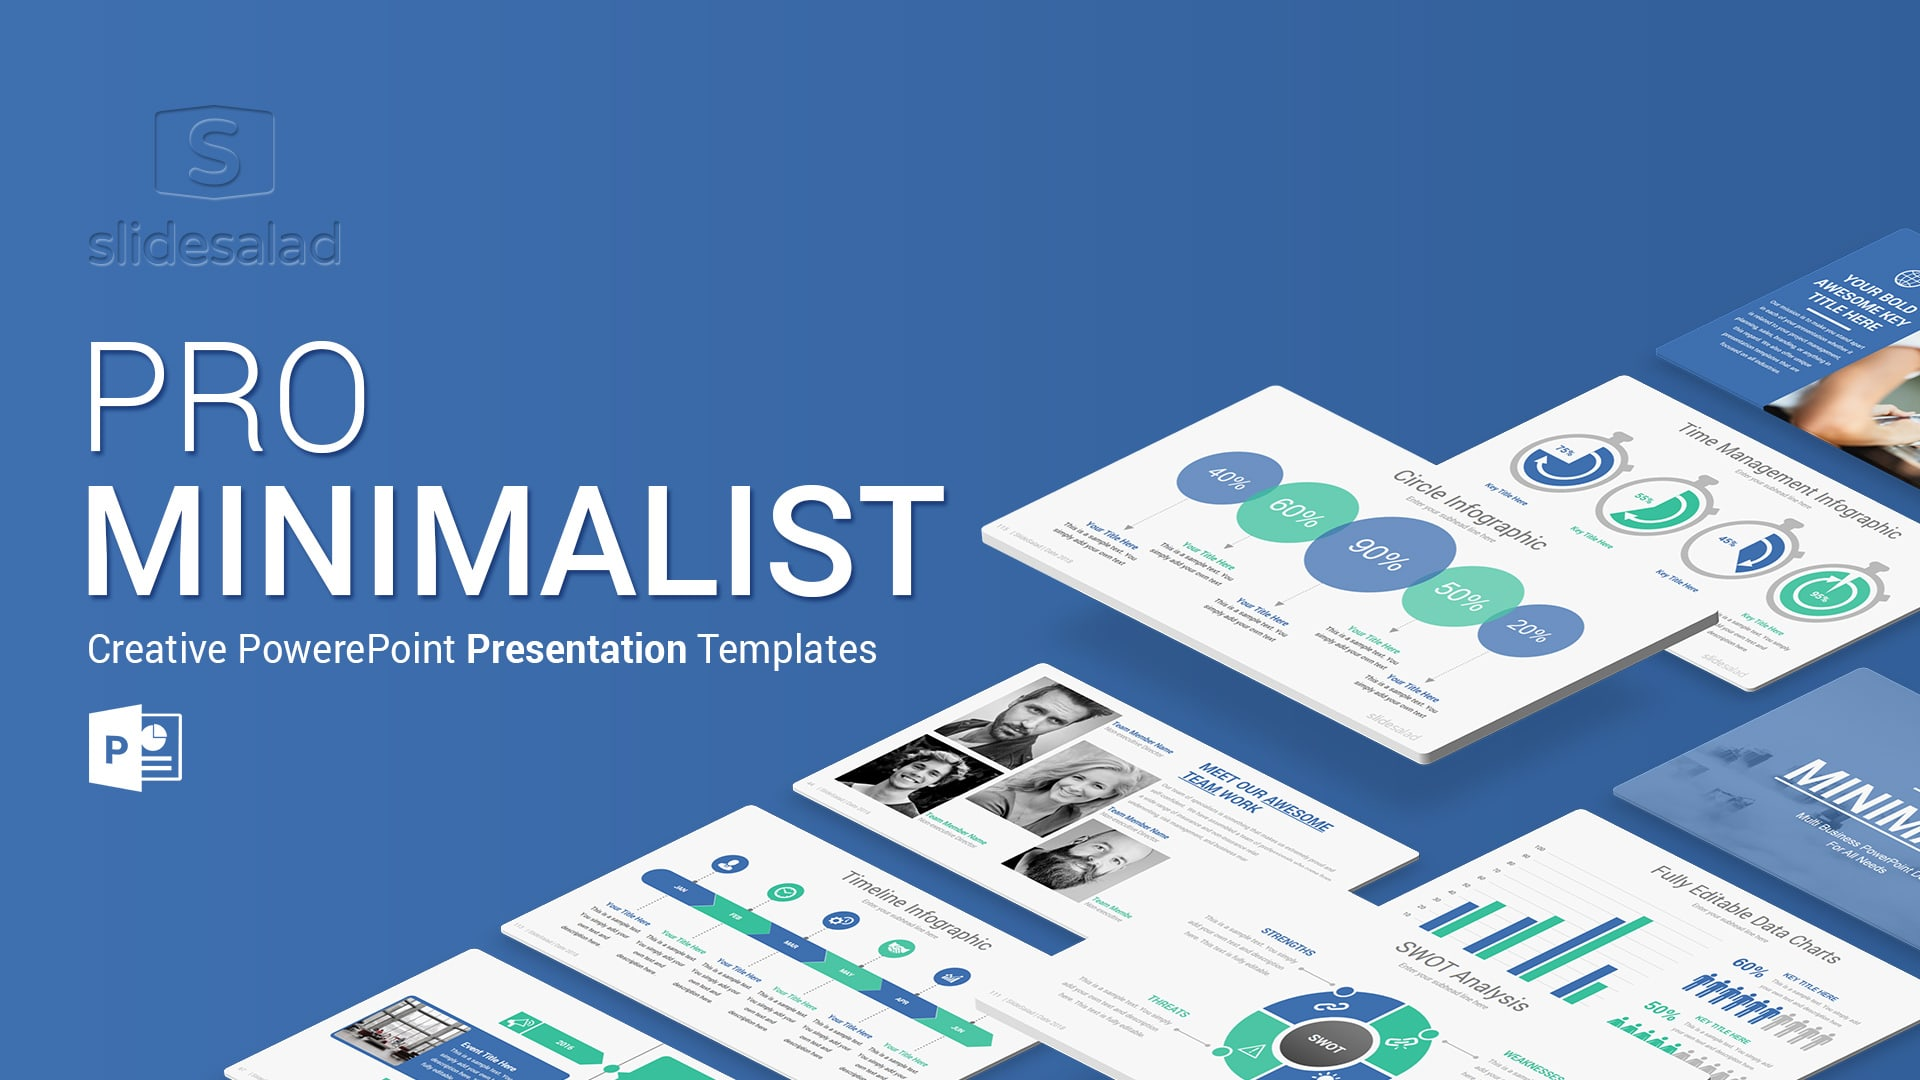 Minimalist PowerPoint Template Designs - High-quality Awesome PowerPoint Presentation Templates